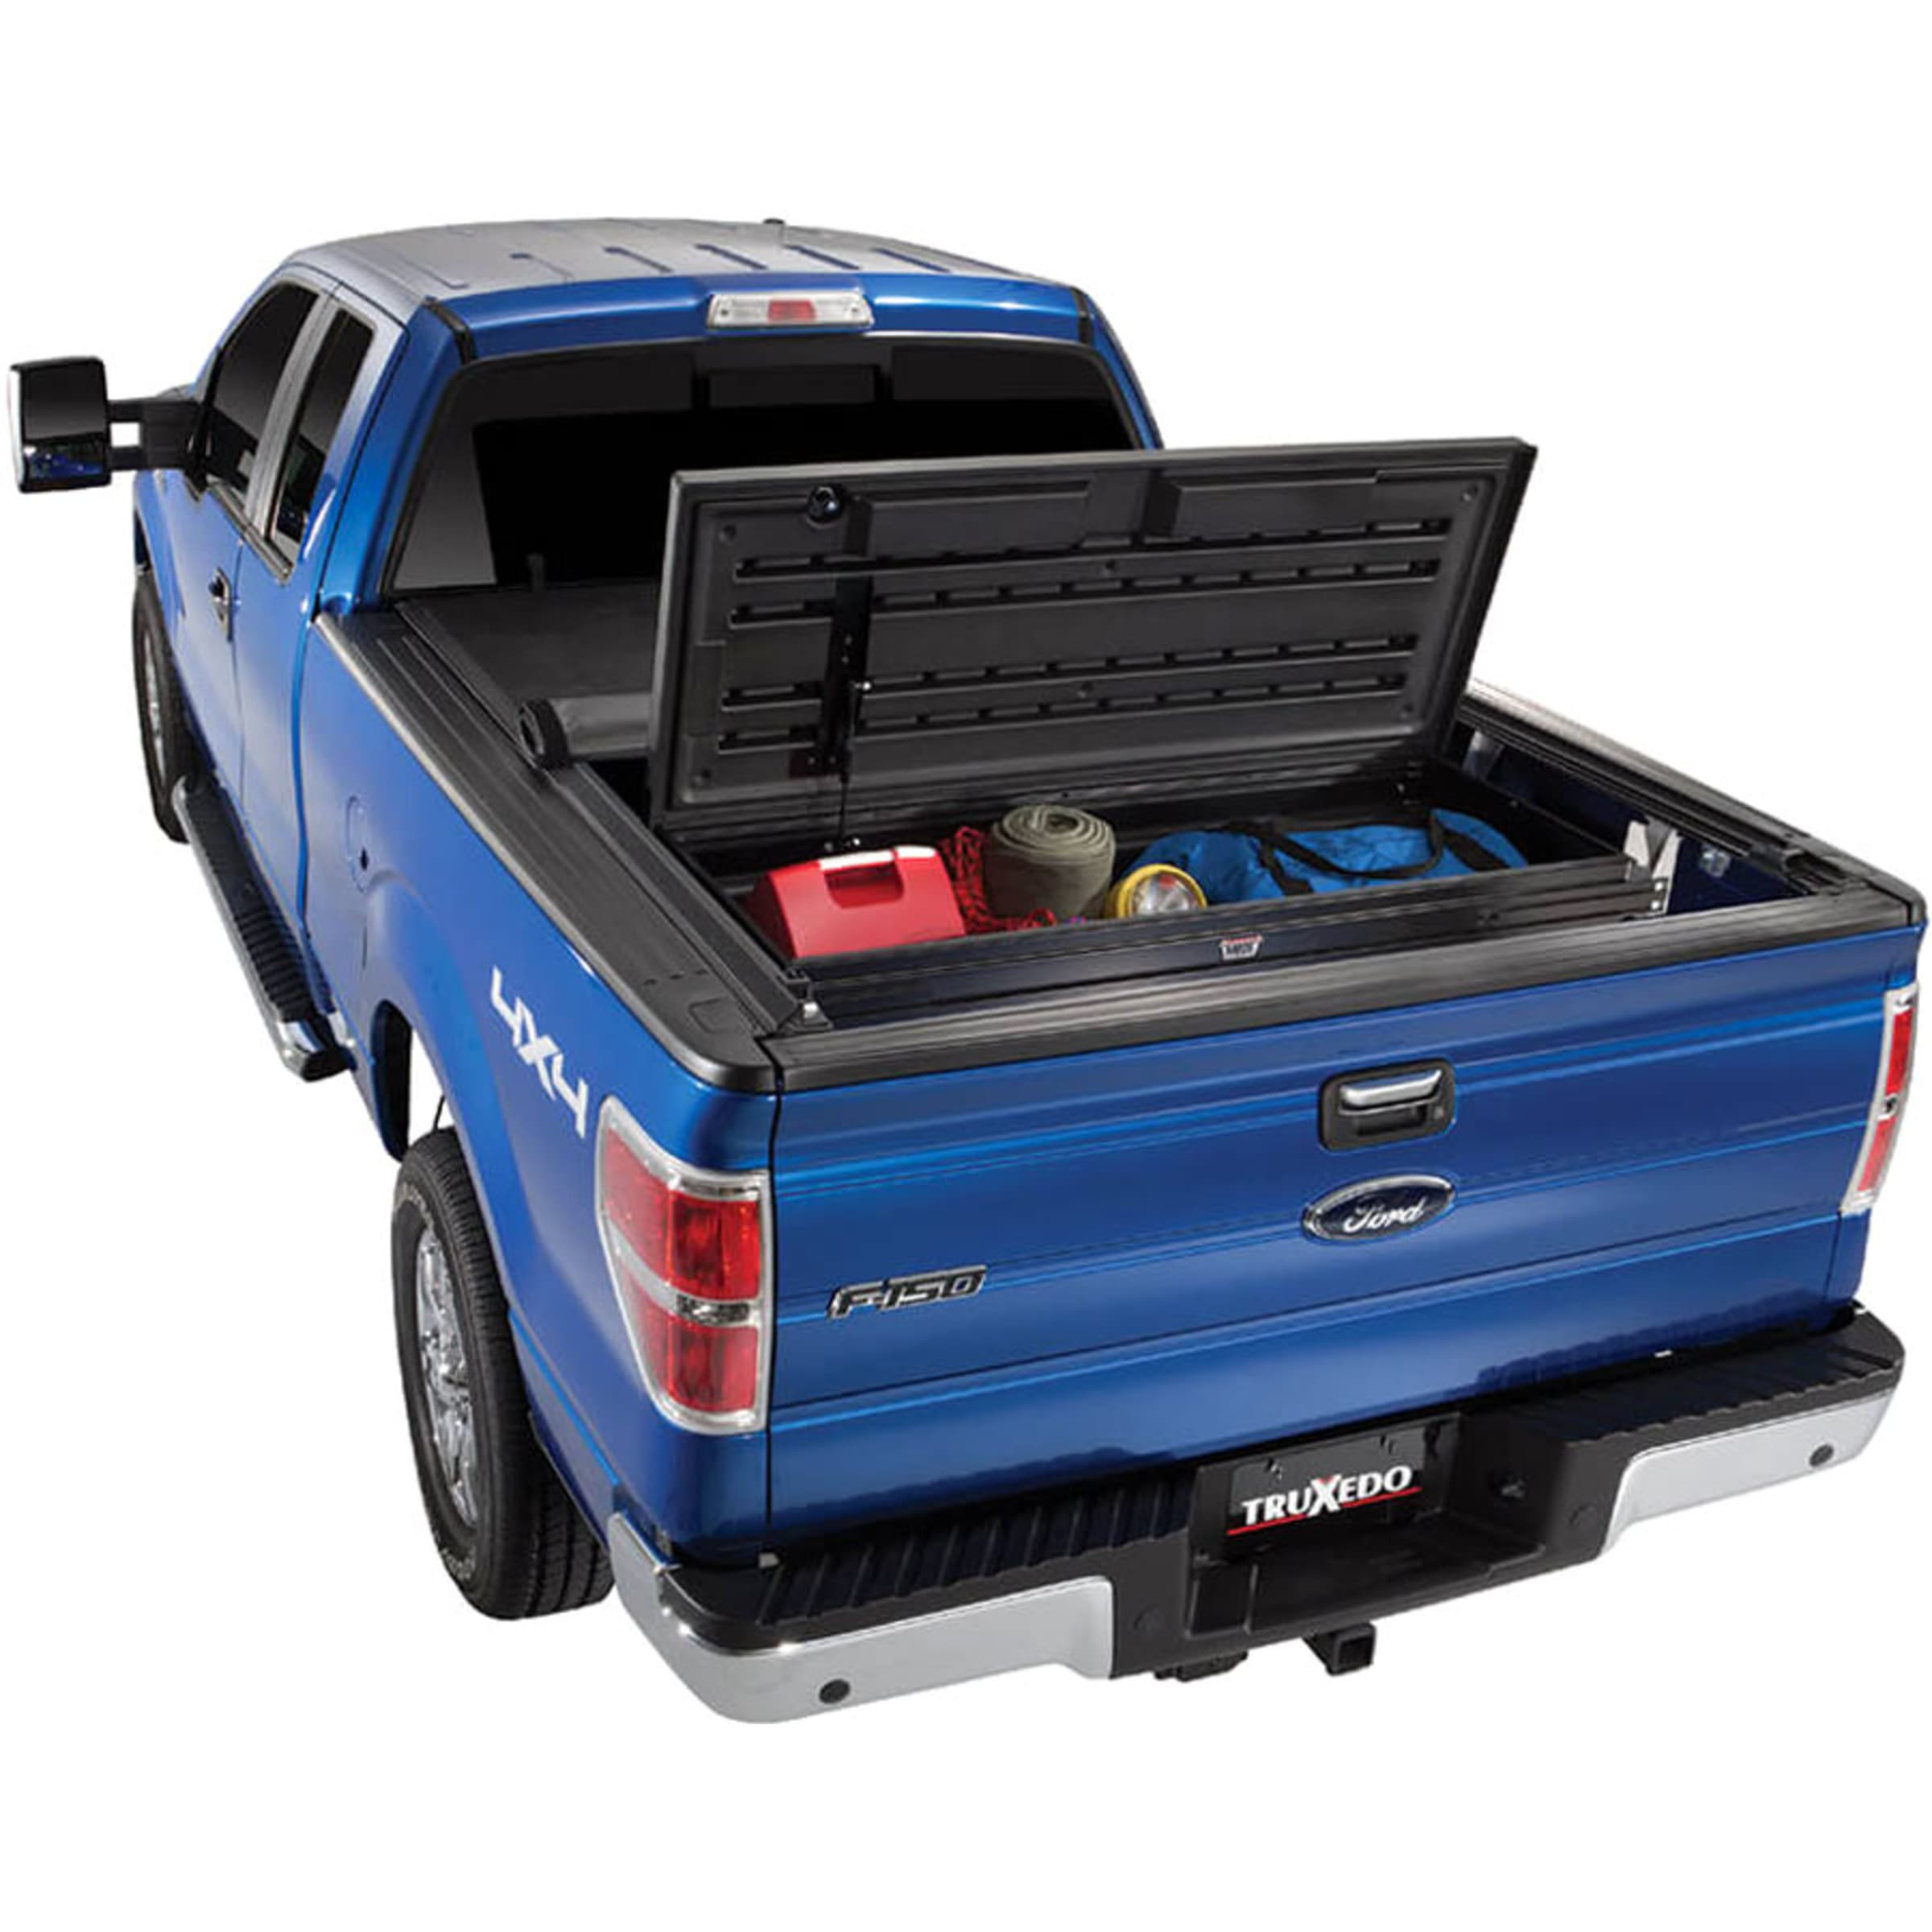 Truck Utility Box >> Truxedo 1117416 Truck Tool Box Black Thermoplastic Utility Box Direct Fit Sold Individually